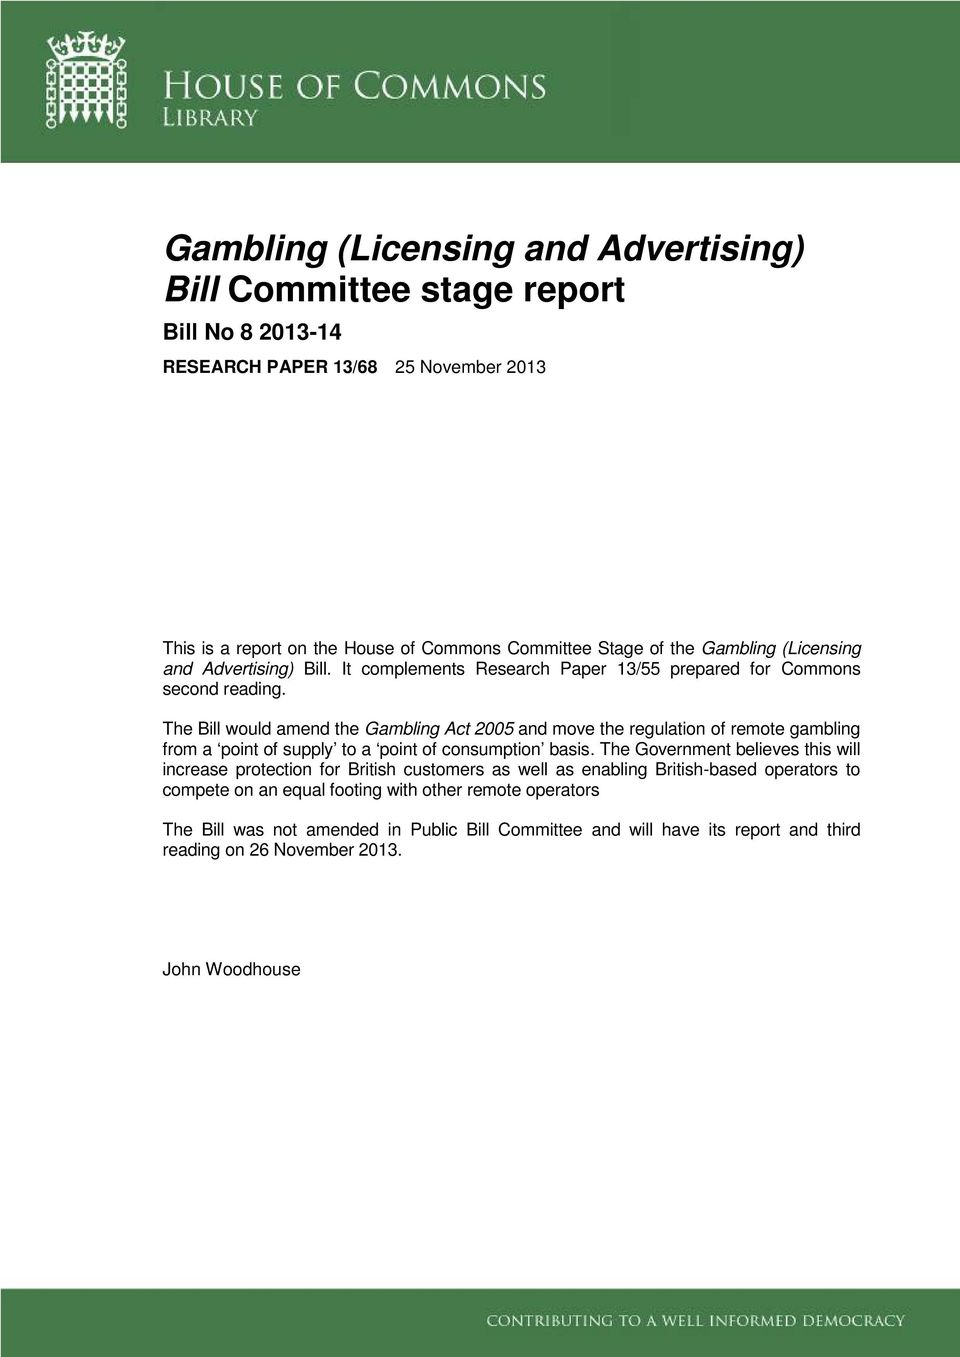 The Bill would amend the Gambling Act 2005 and move the regulation of remote gambling from a point of supply to a point of consumption basis.